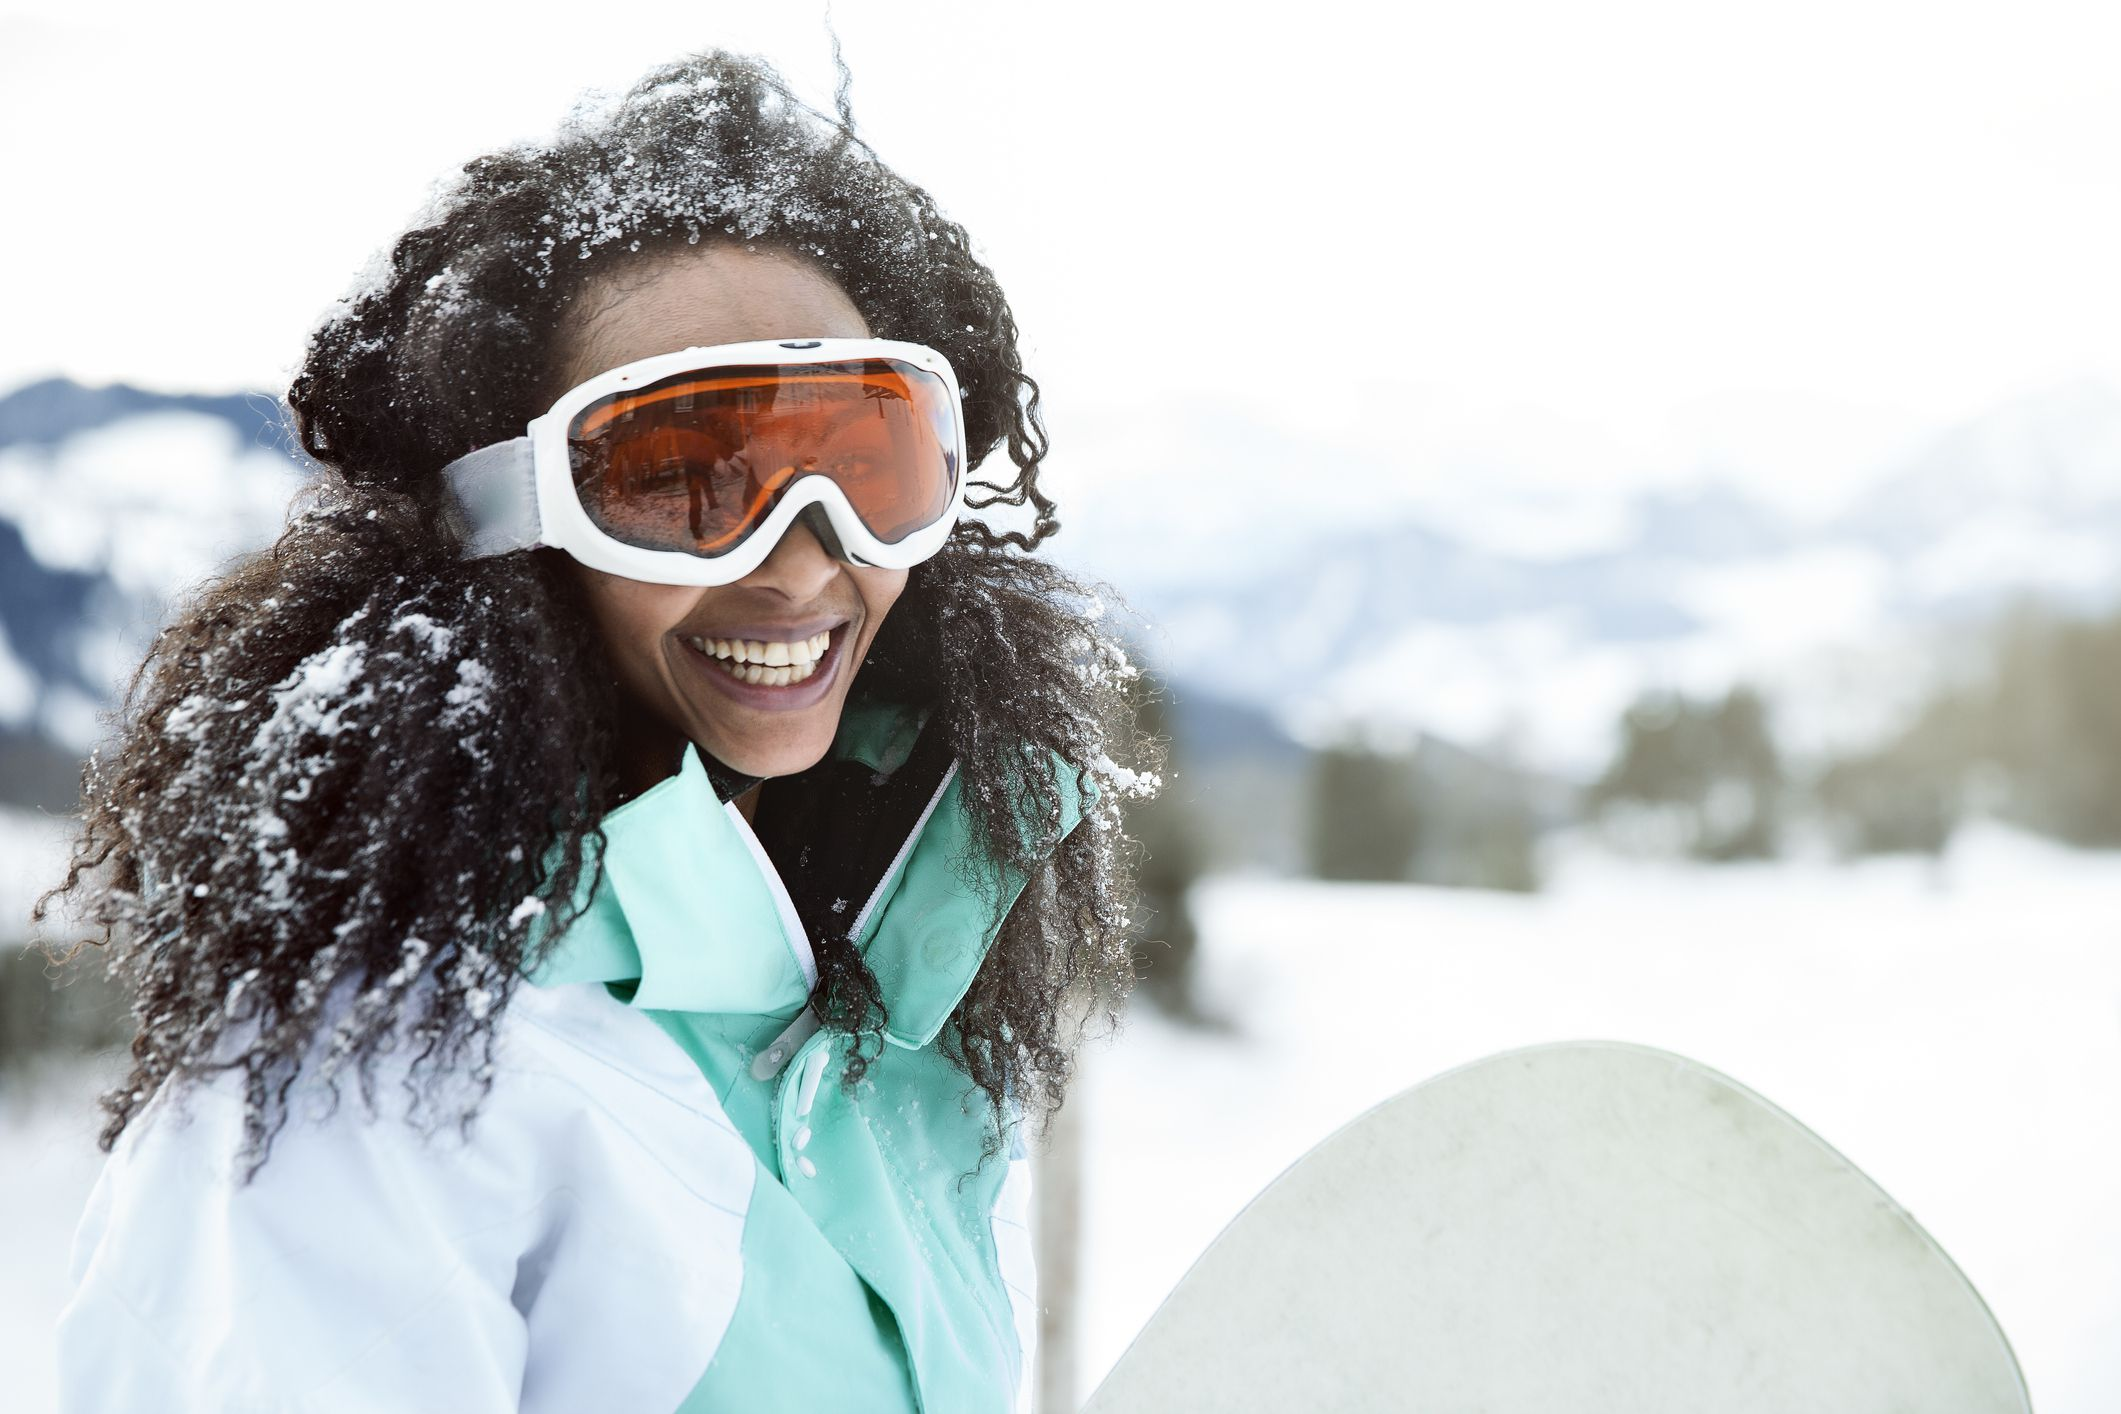 The 7 Best Snowboard Goggles of 2021